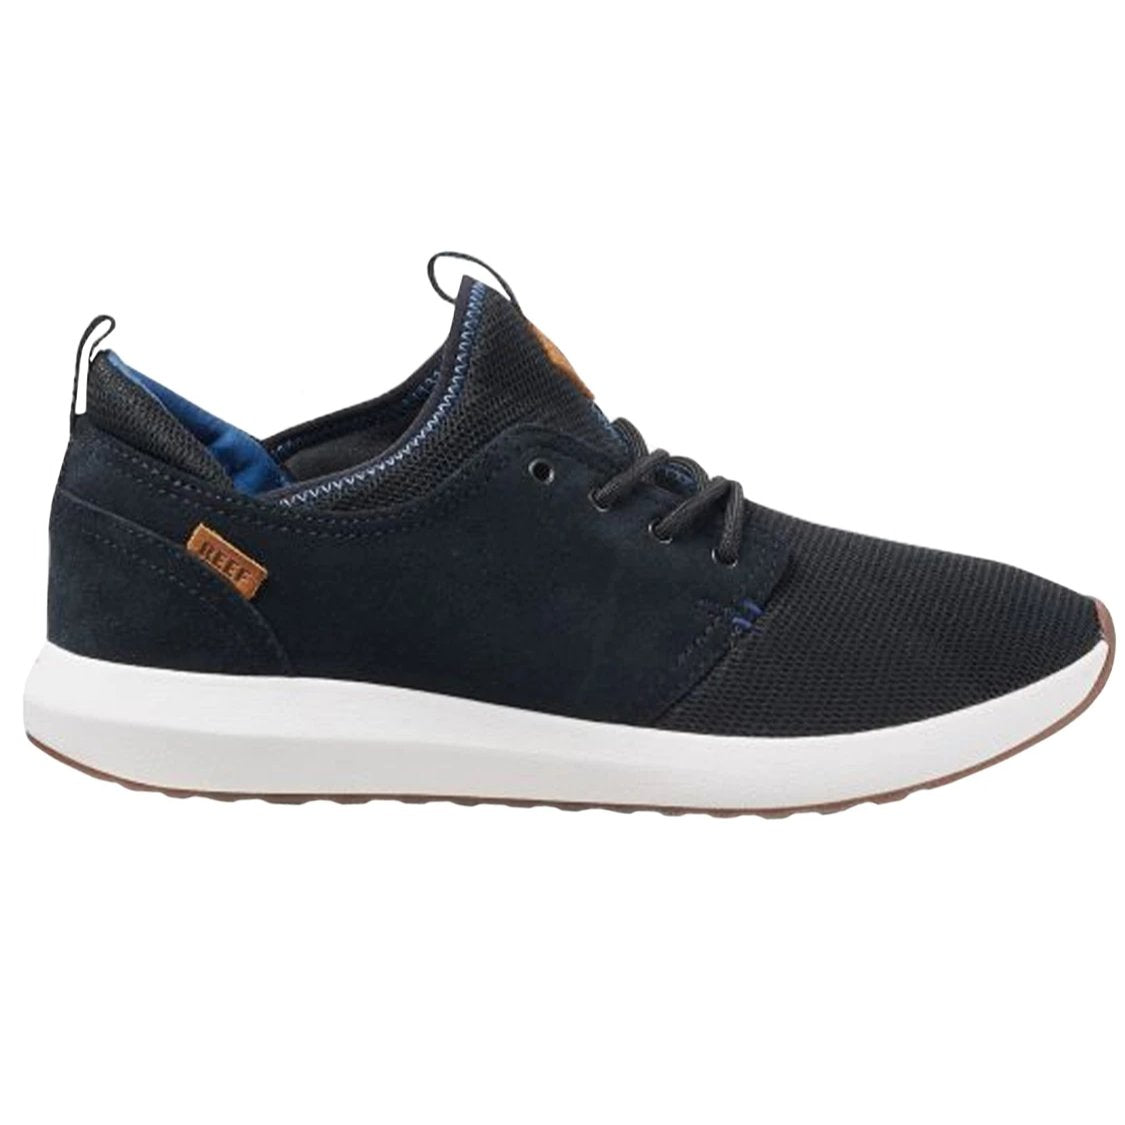 Reef Men's Cruiser Shoes